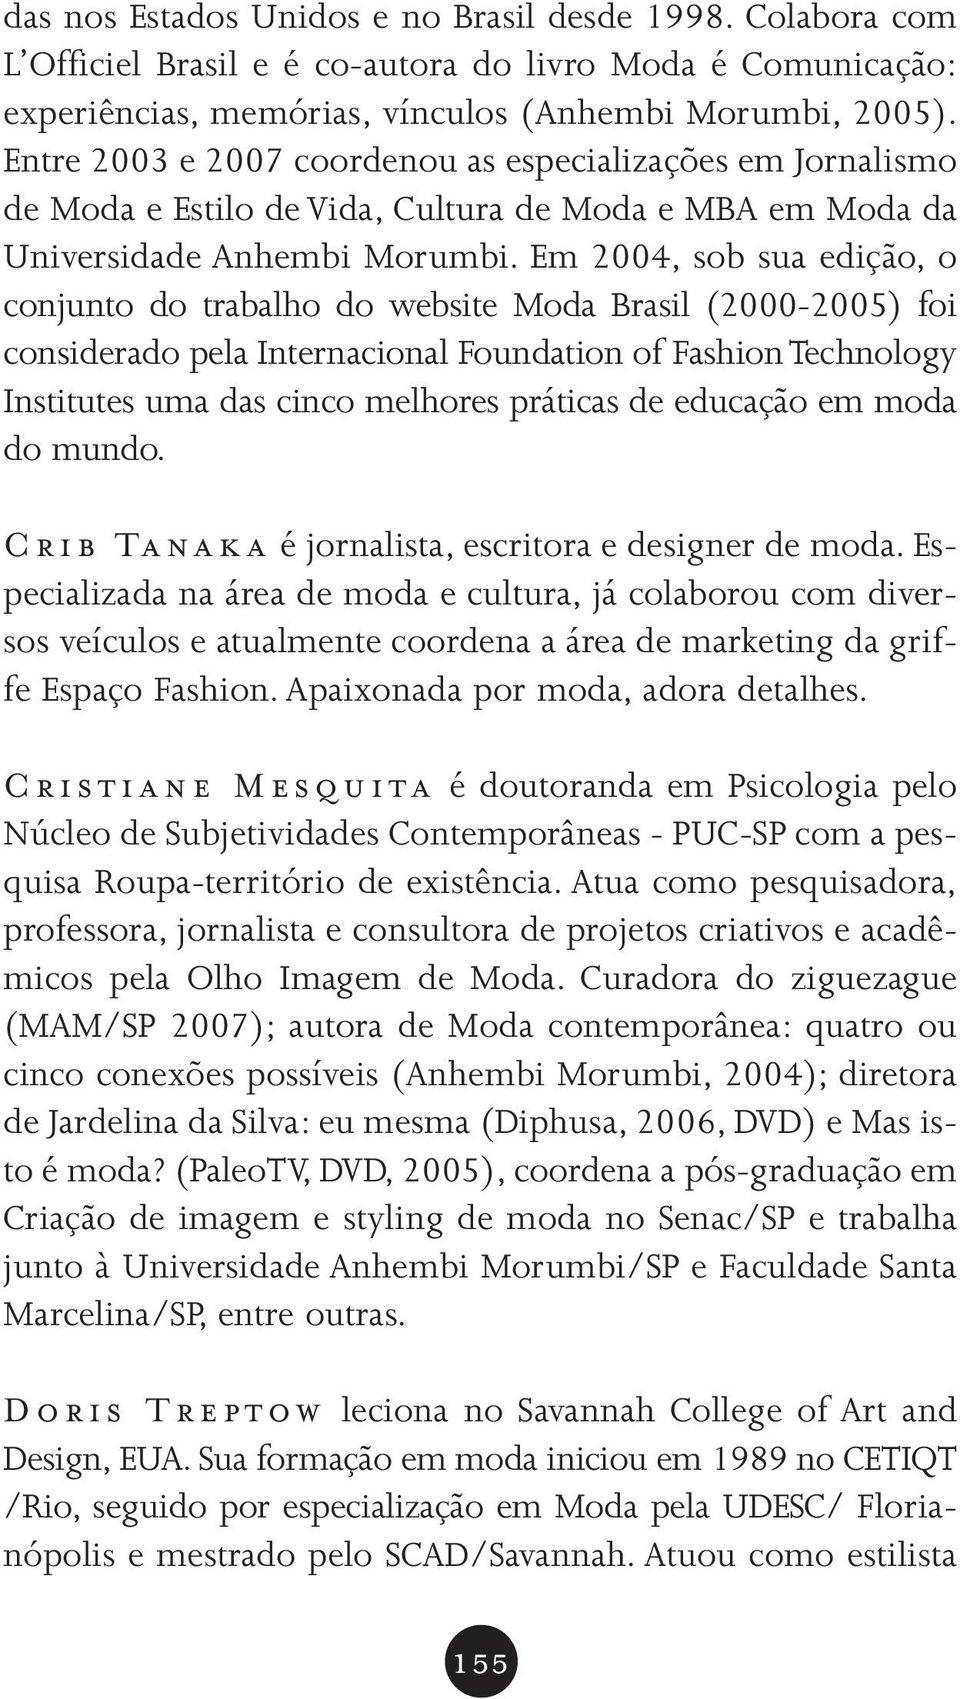 Em 2004, sob sua edição, o conjunto do trabalho do website Moda Brasil (2000-2005) foi considerado pela Internacional Foundation of Fashion Technology Institutes uma das cinco melhores práticas de